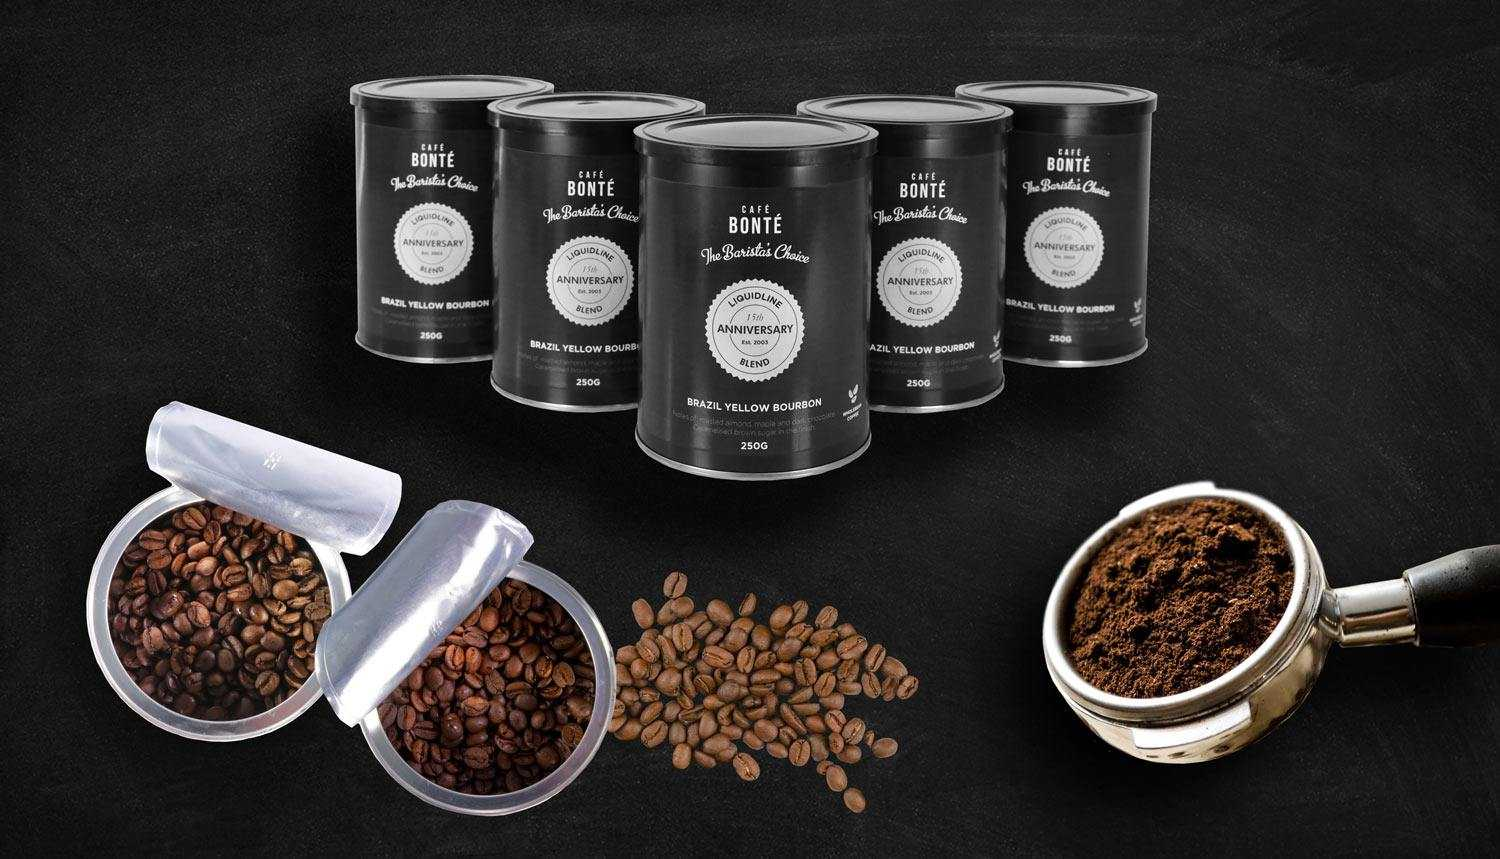 cafe bonte 15 years anniversary coffee beans